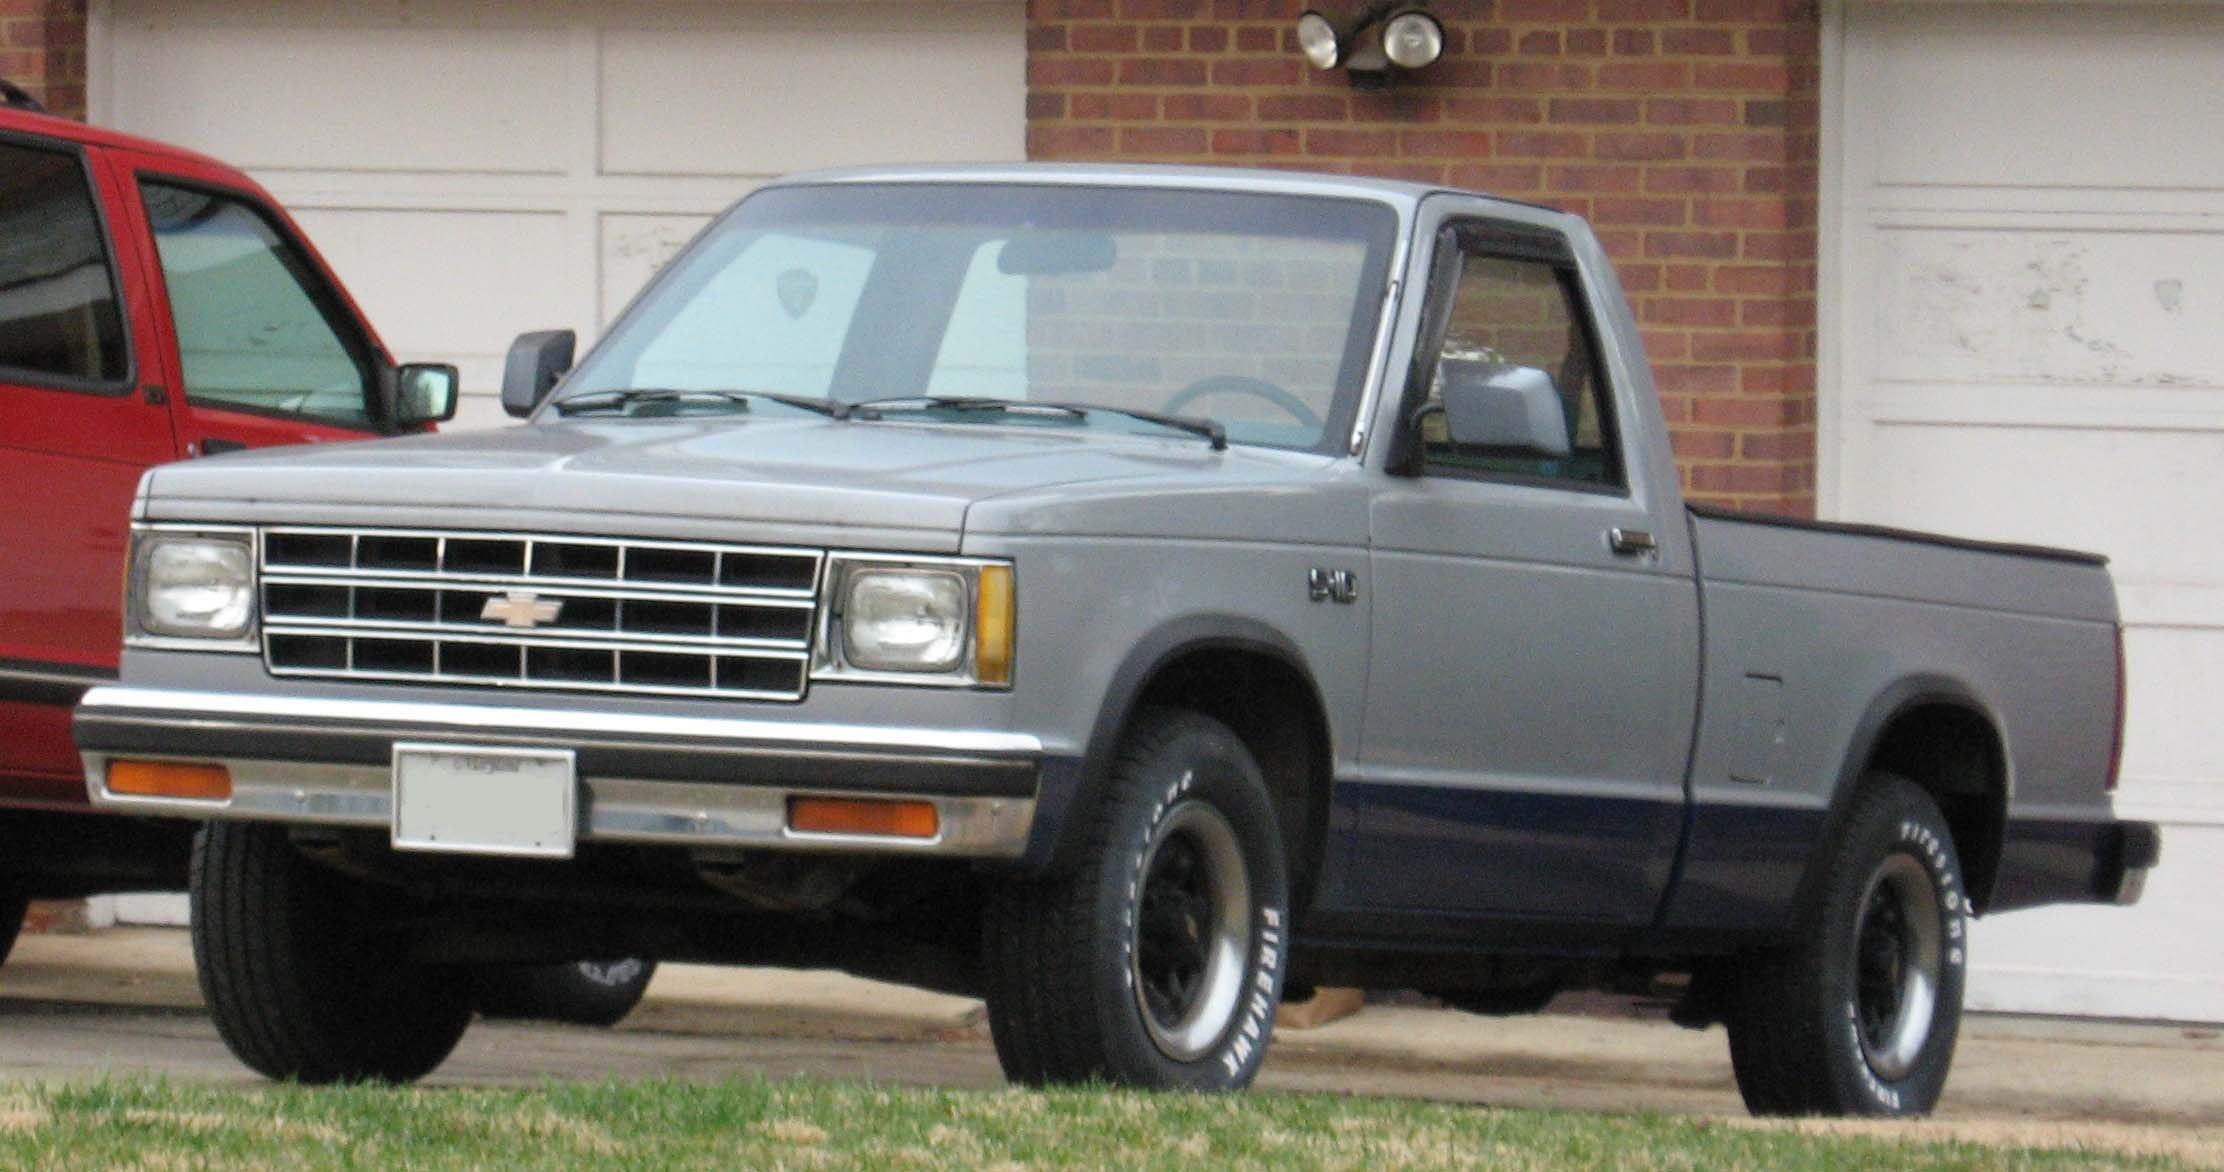 1990 chevy s 10 my first vehicle